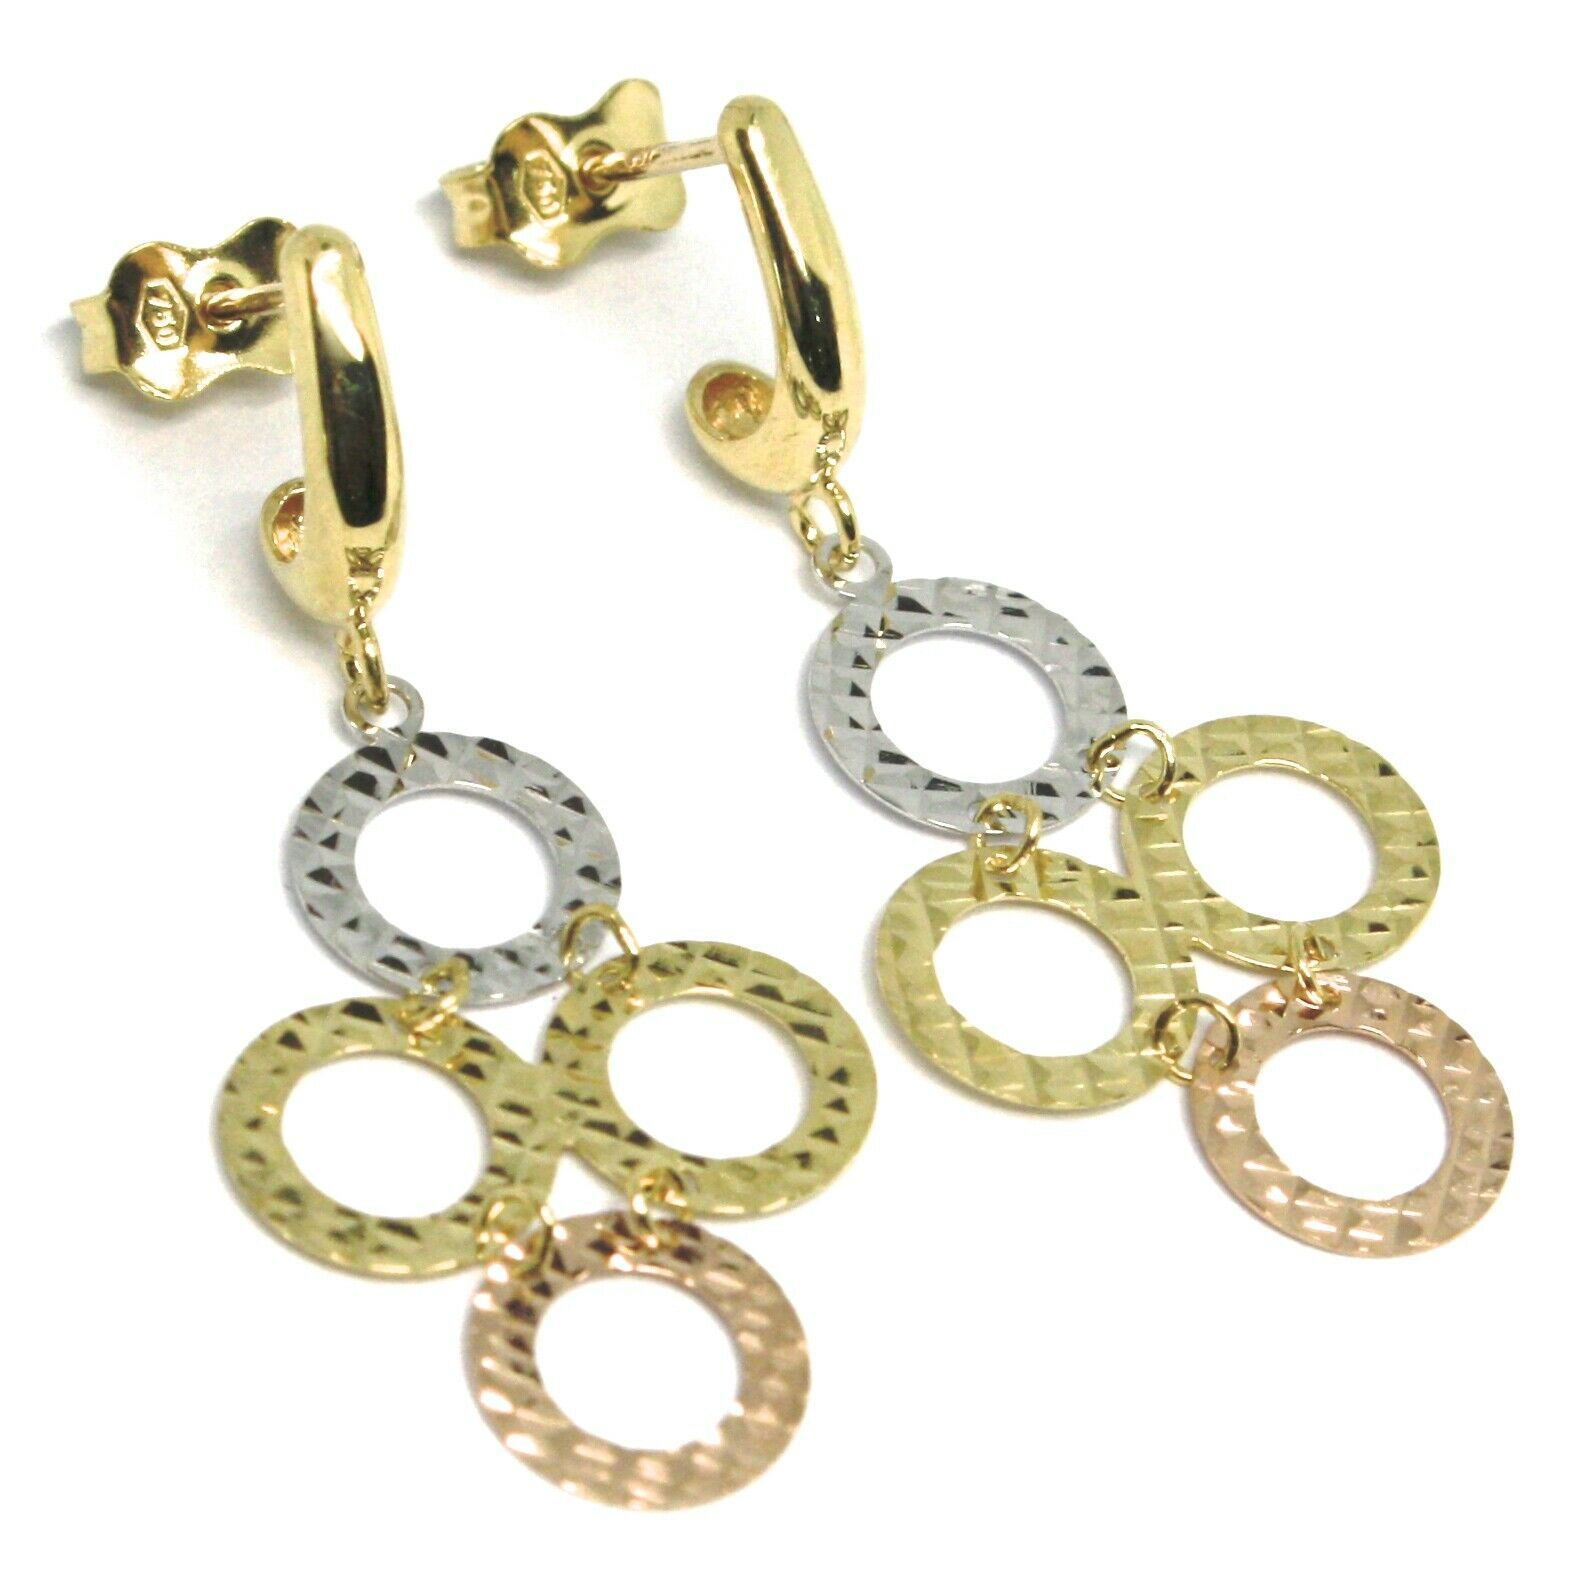 18K YELLOW WHITE ROSE GOLD PENDANT EARRINGS, FINELY WORKED FLAT CIRCLES